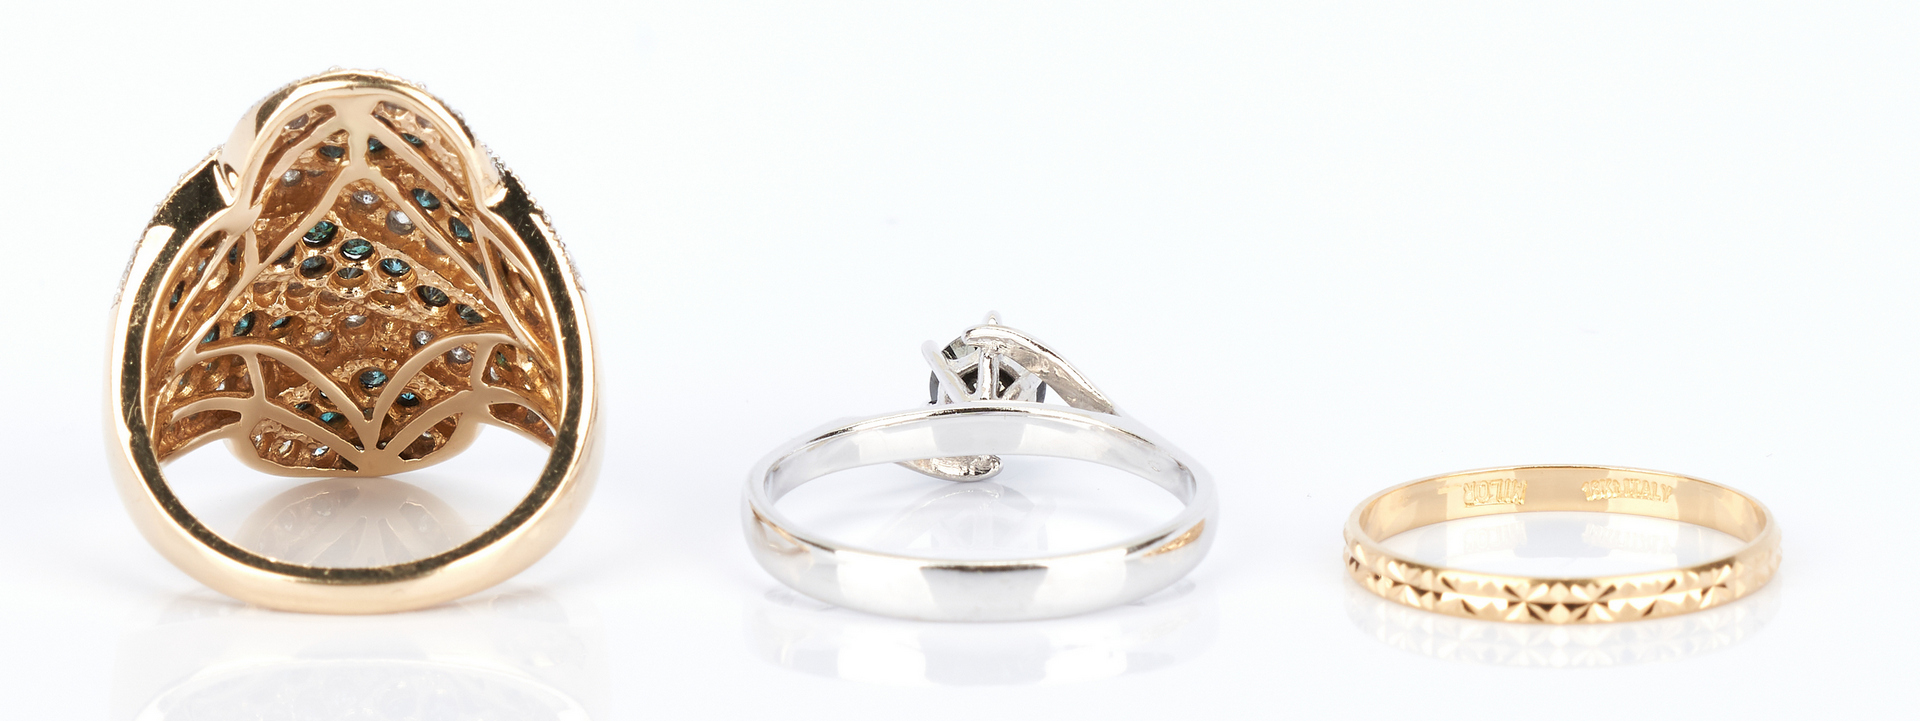 Lot 772: 6 Assorted Gold Rings with Diamonds